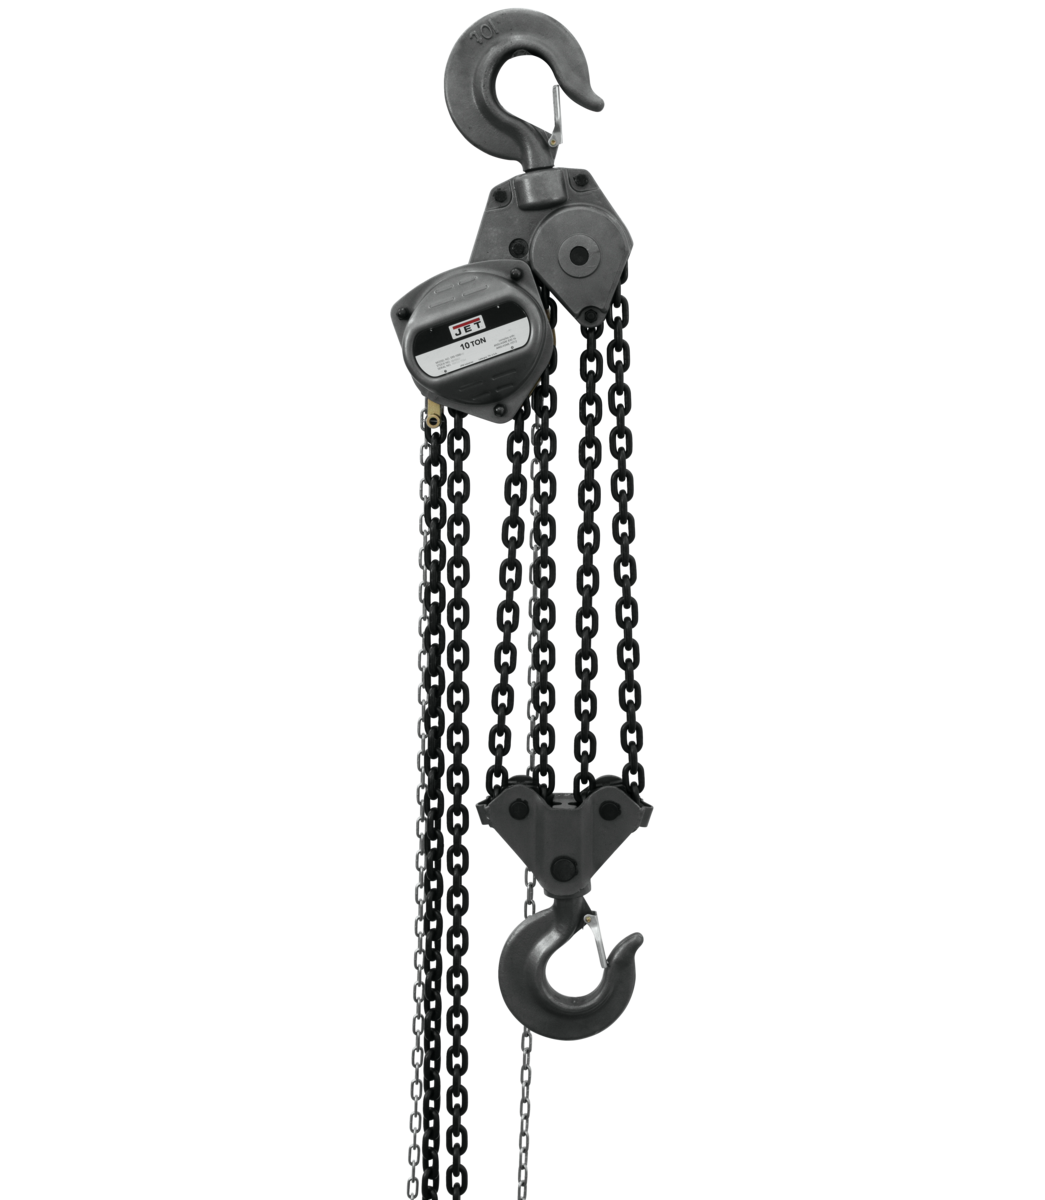 S90-1000-10, 10-Ton Hand Chain Hoist With 10' Lift